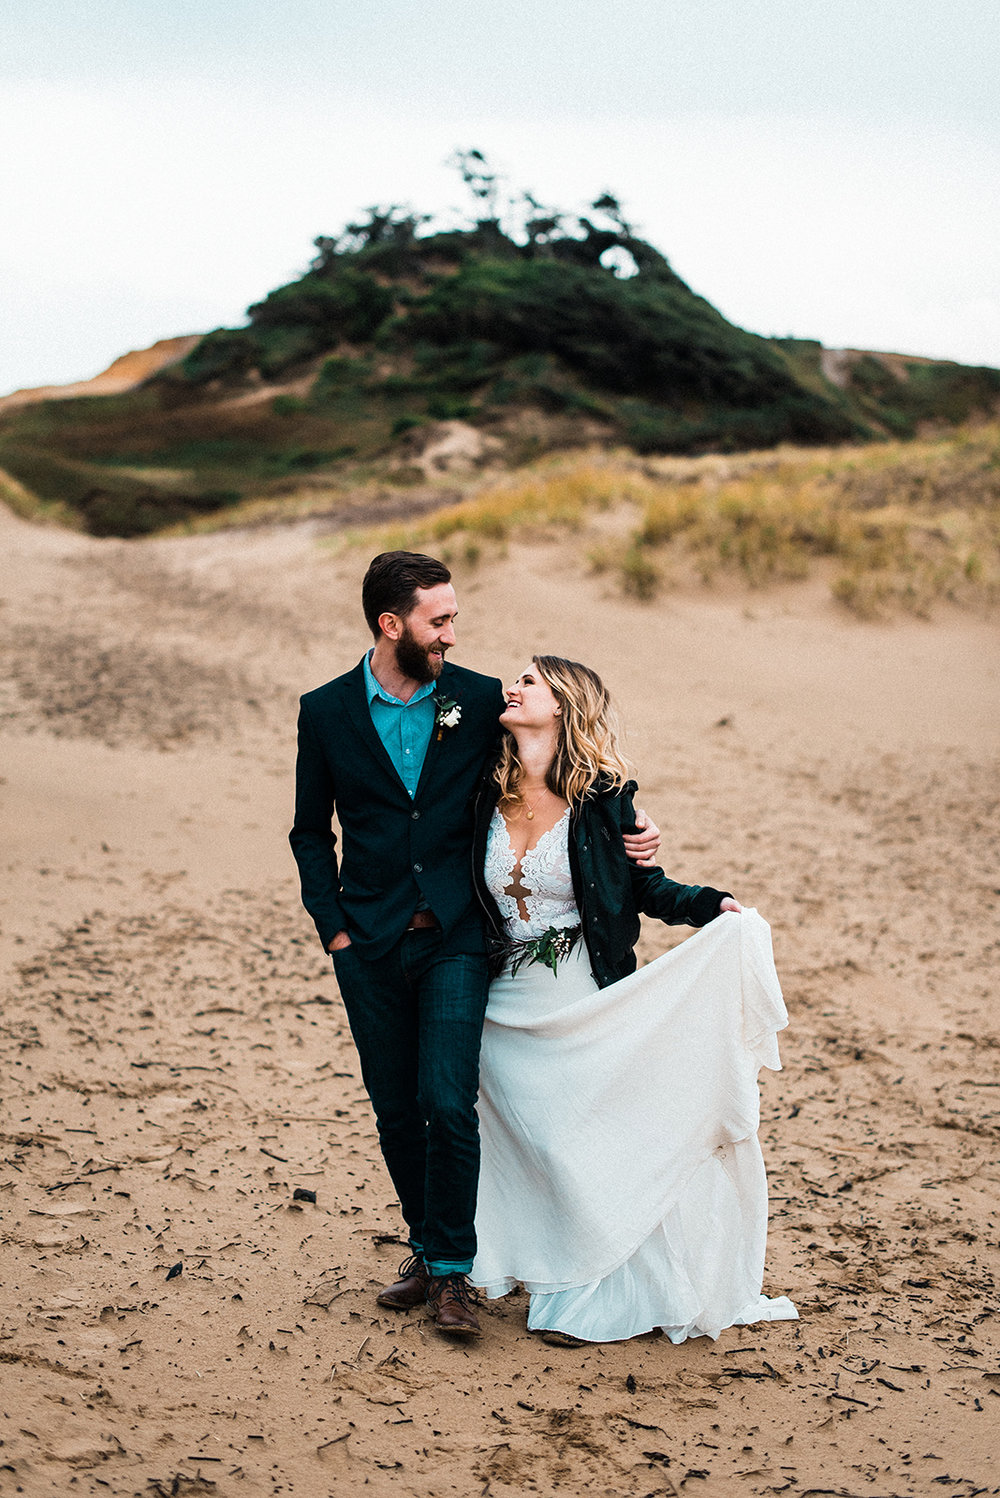 Oregon_Coast_Elopement_Wedding_The_Foxes_Photography_091.jpg